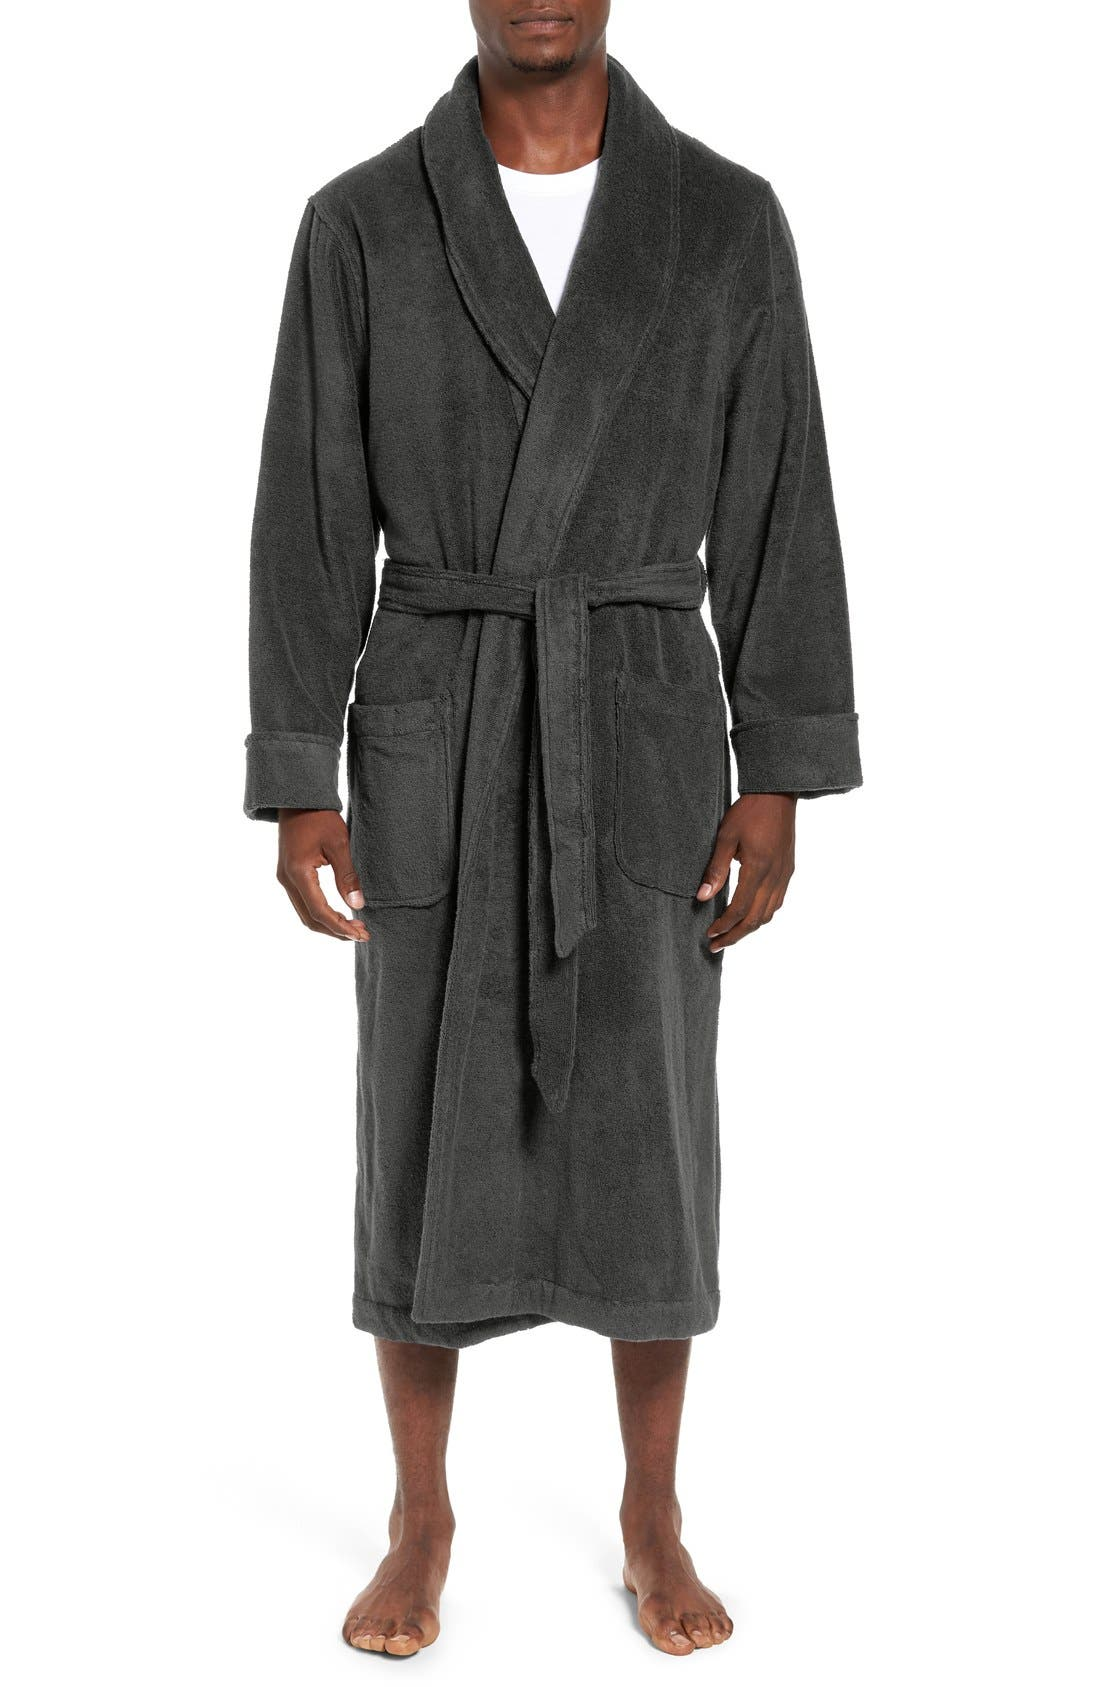 Alternate Image 1 Selected - Nordstrom Hydro Cotton Terry Robe